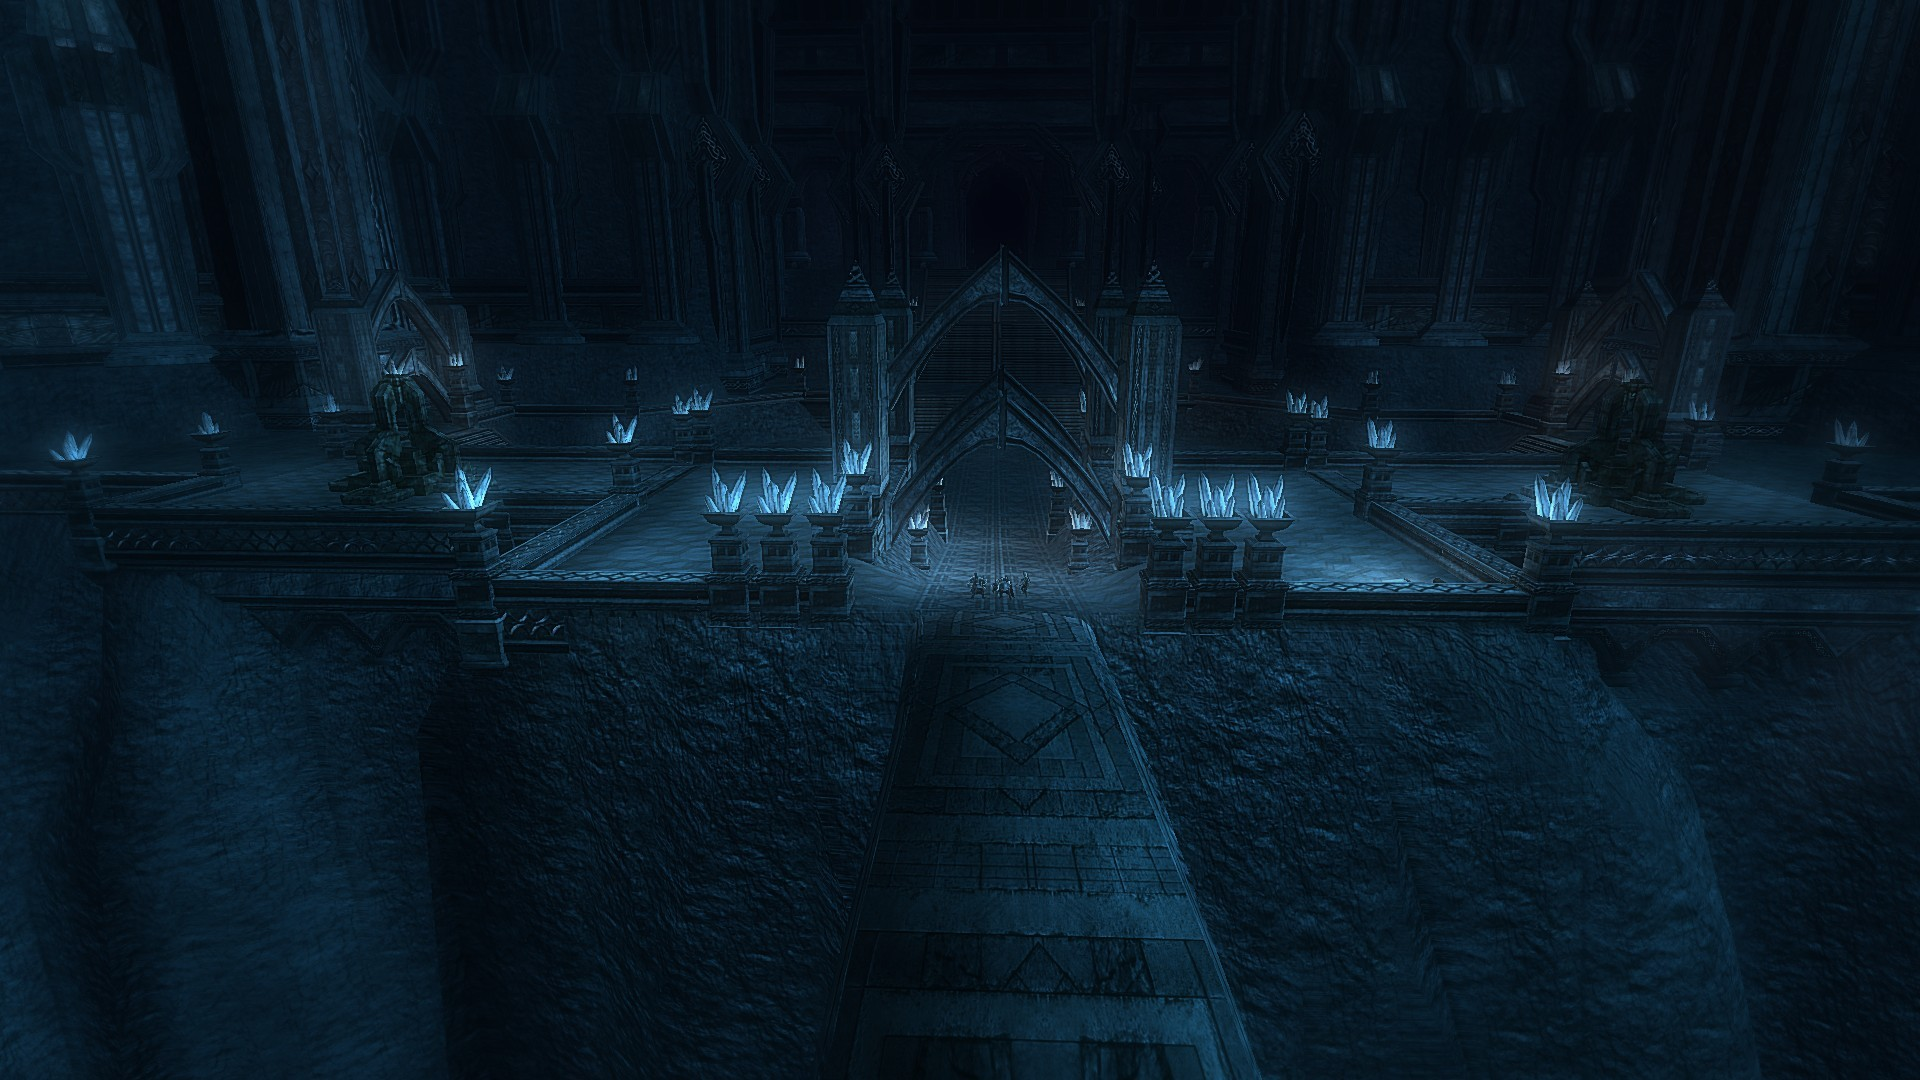 Lord of the Rings Online - A grand hall indeed